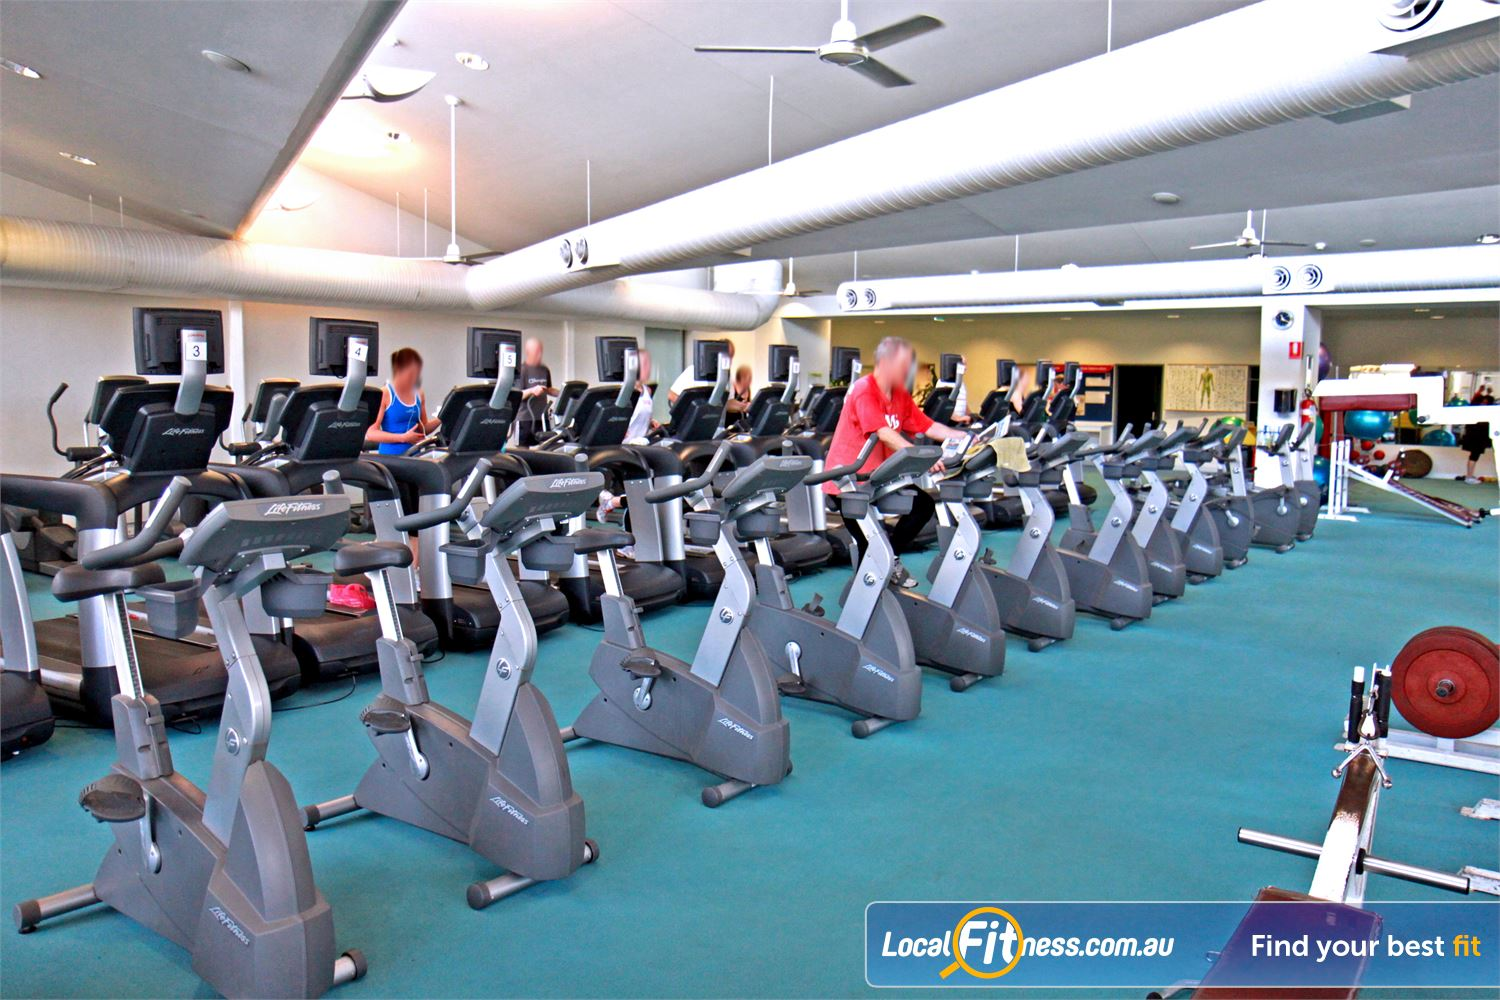 Ascot Vale Leisure Centre Near Moonee Ponds An extensive selection to minimize wait time in our Ascot Vale gym.